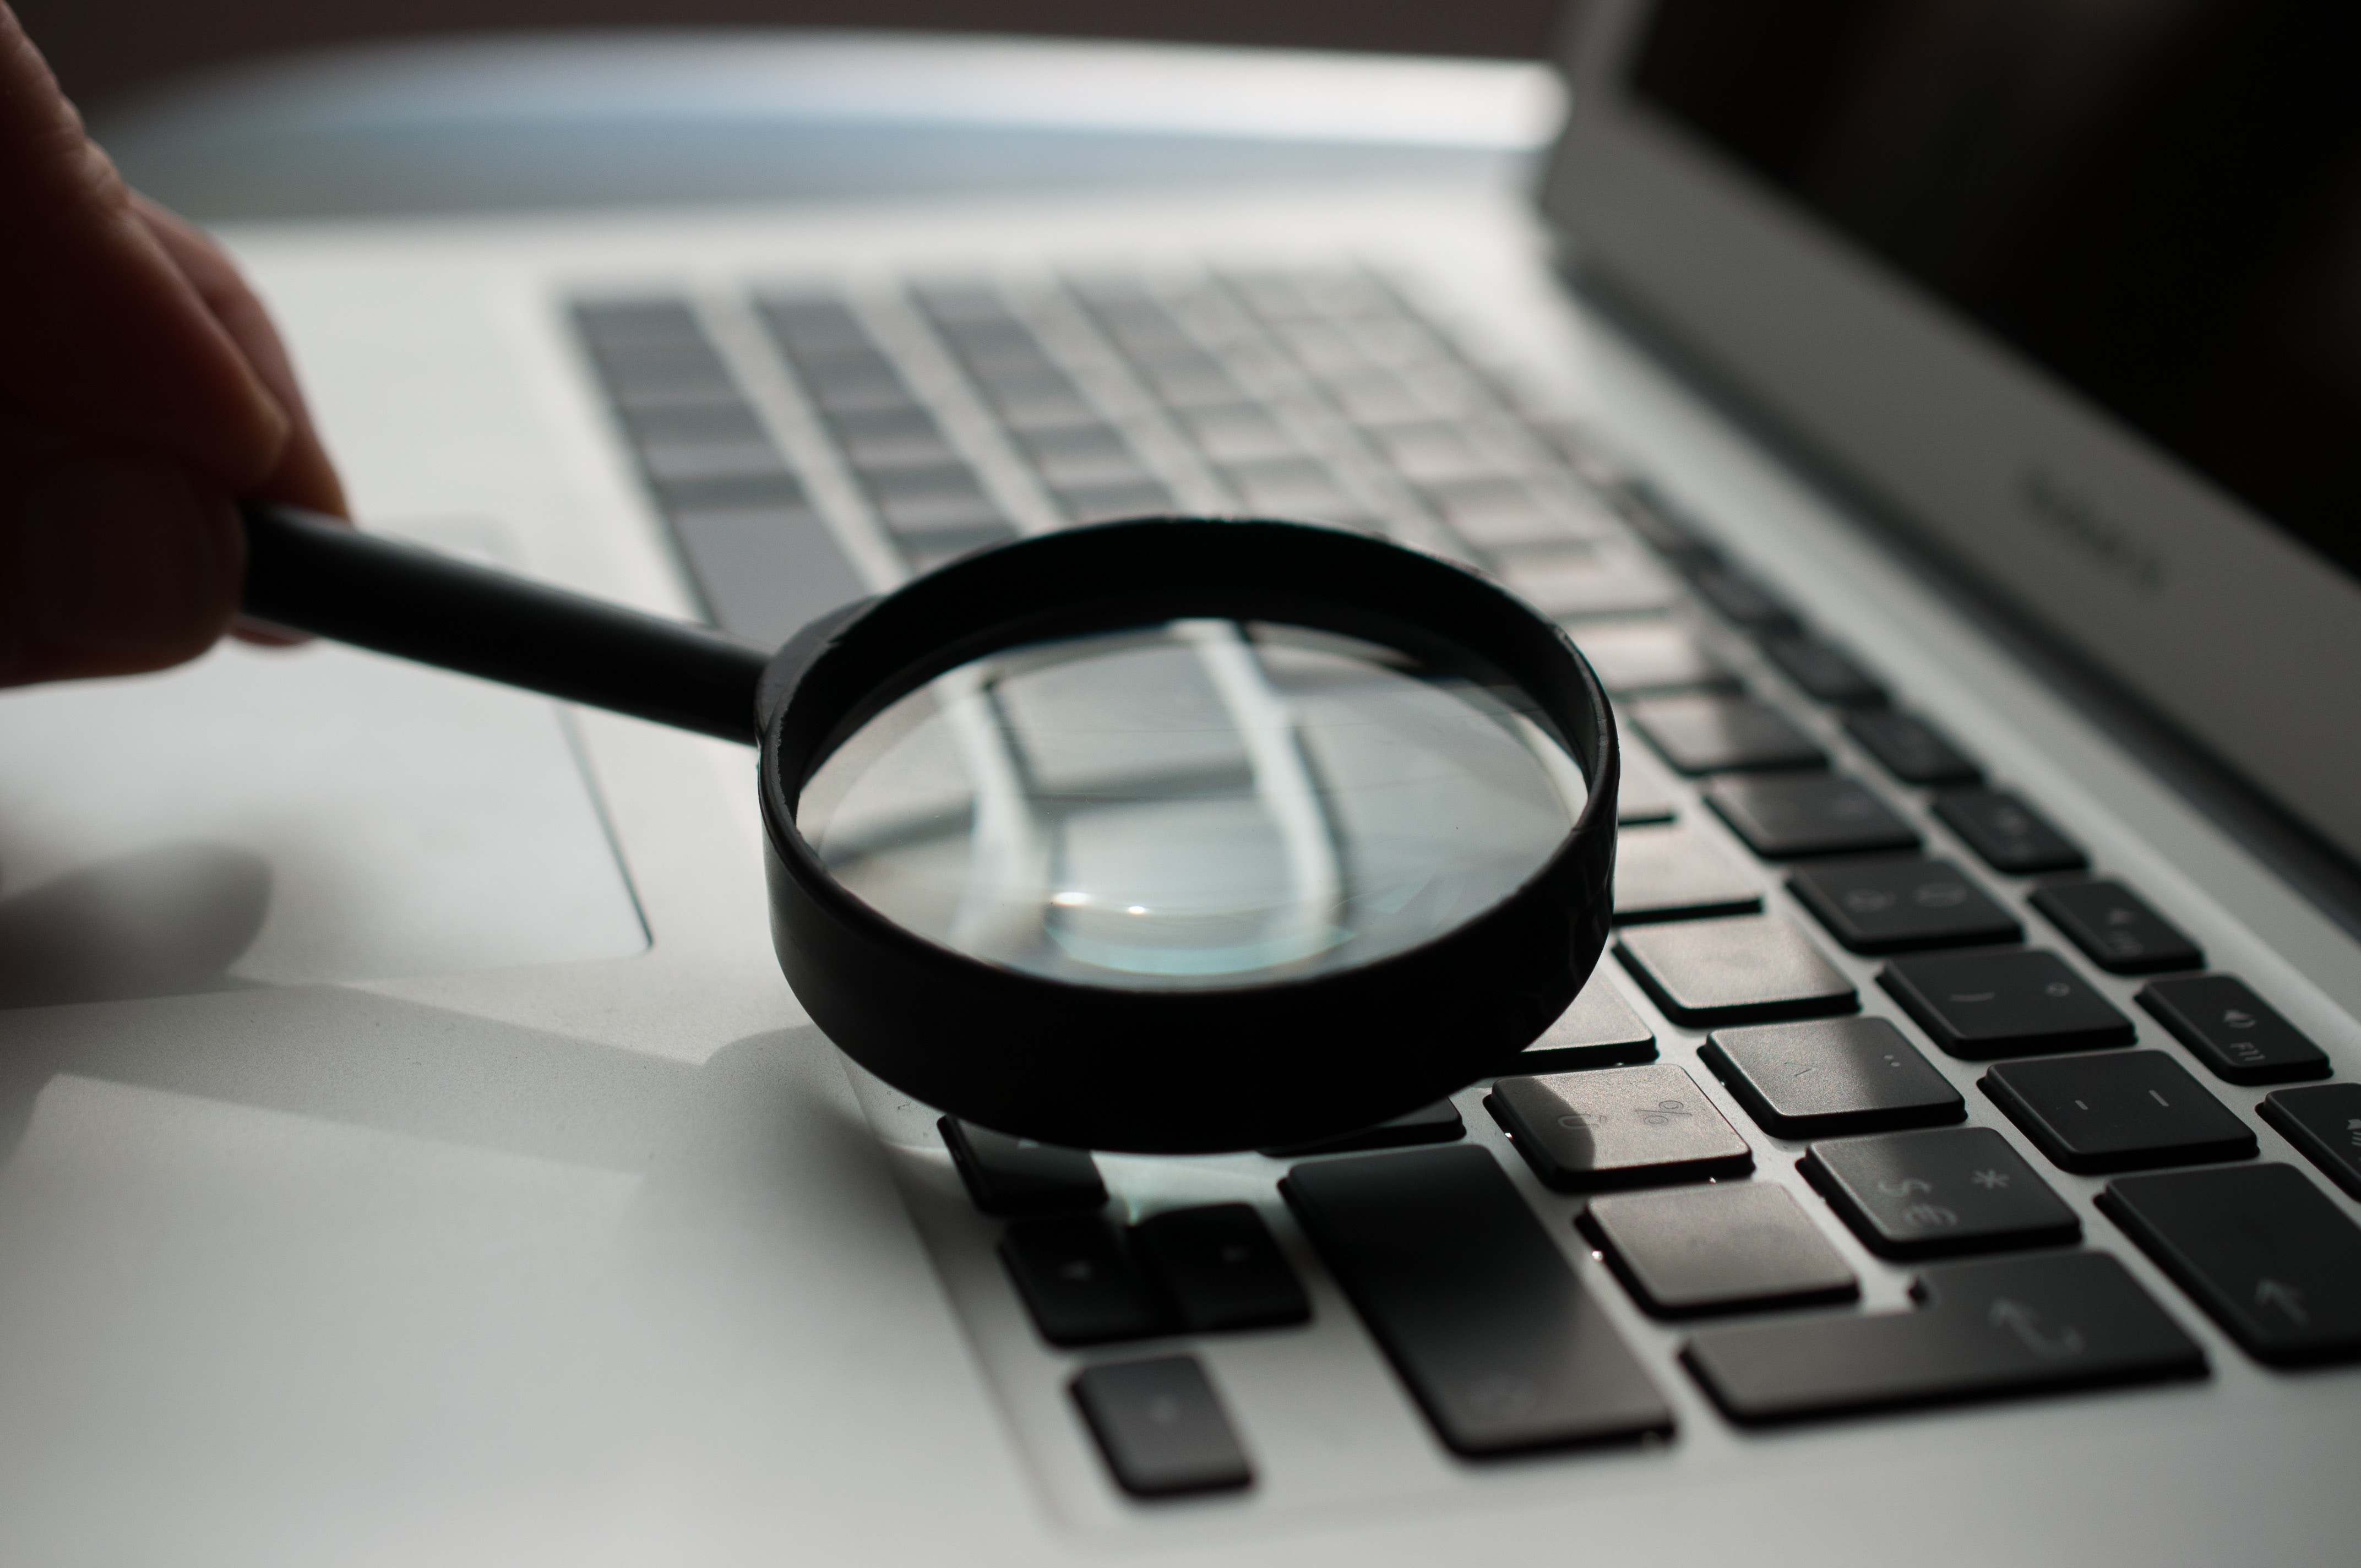 magnifying glass on the keyboard of a laptop